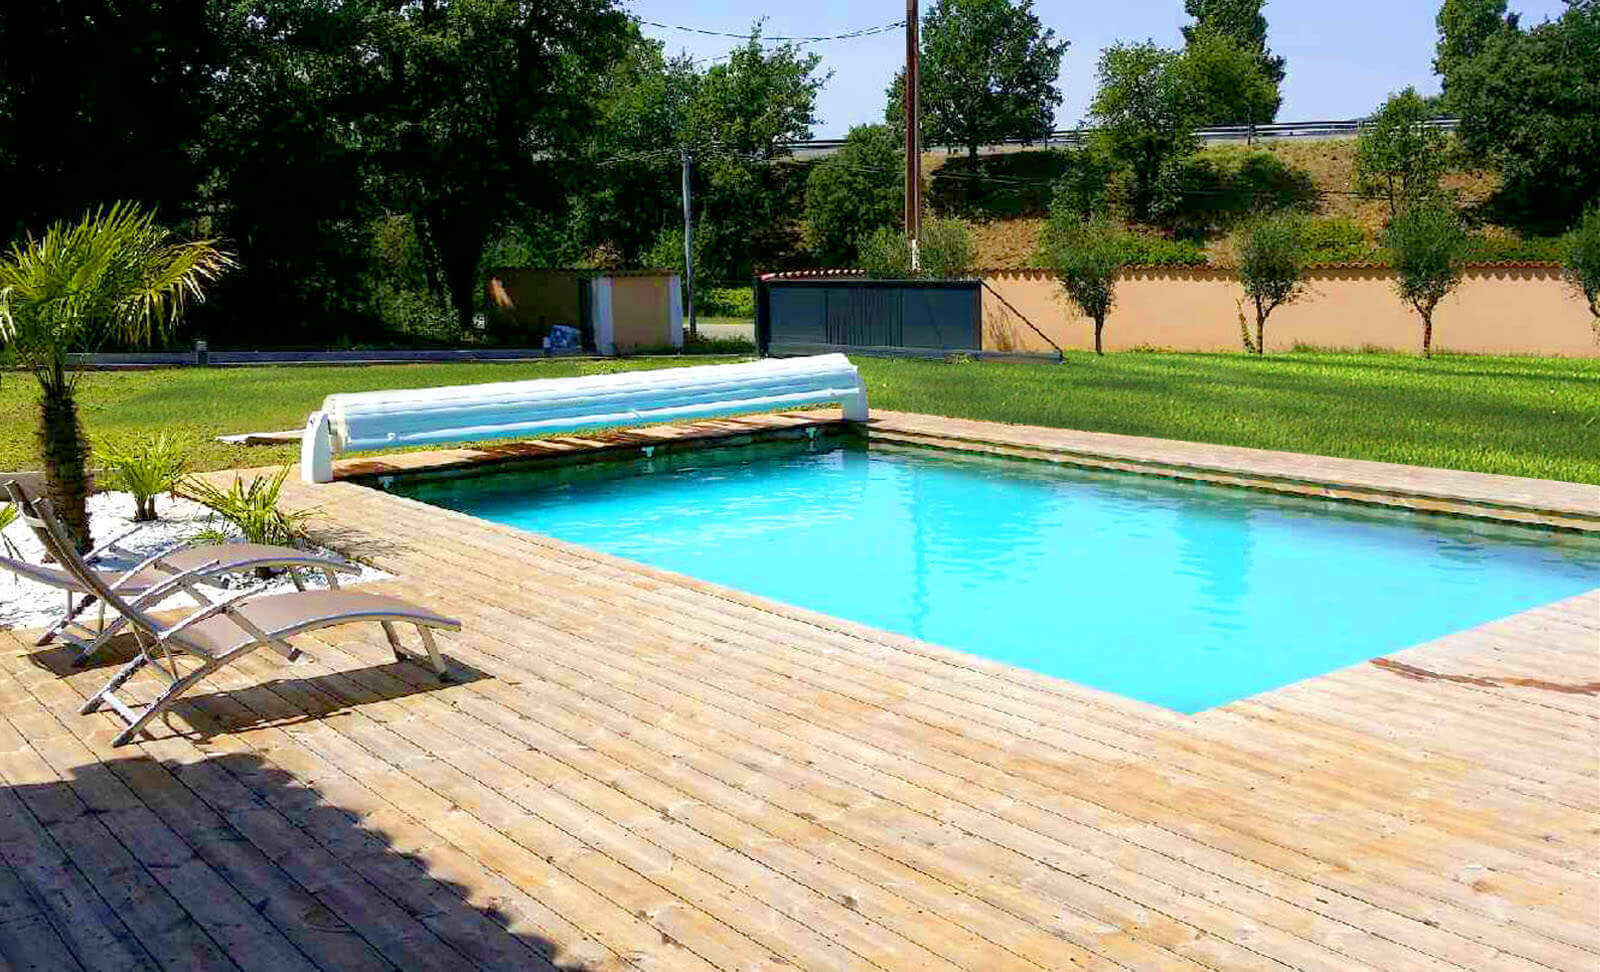 Galerie photos de piscines enterr es en bois for Piscines enterrees